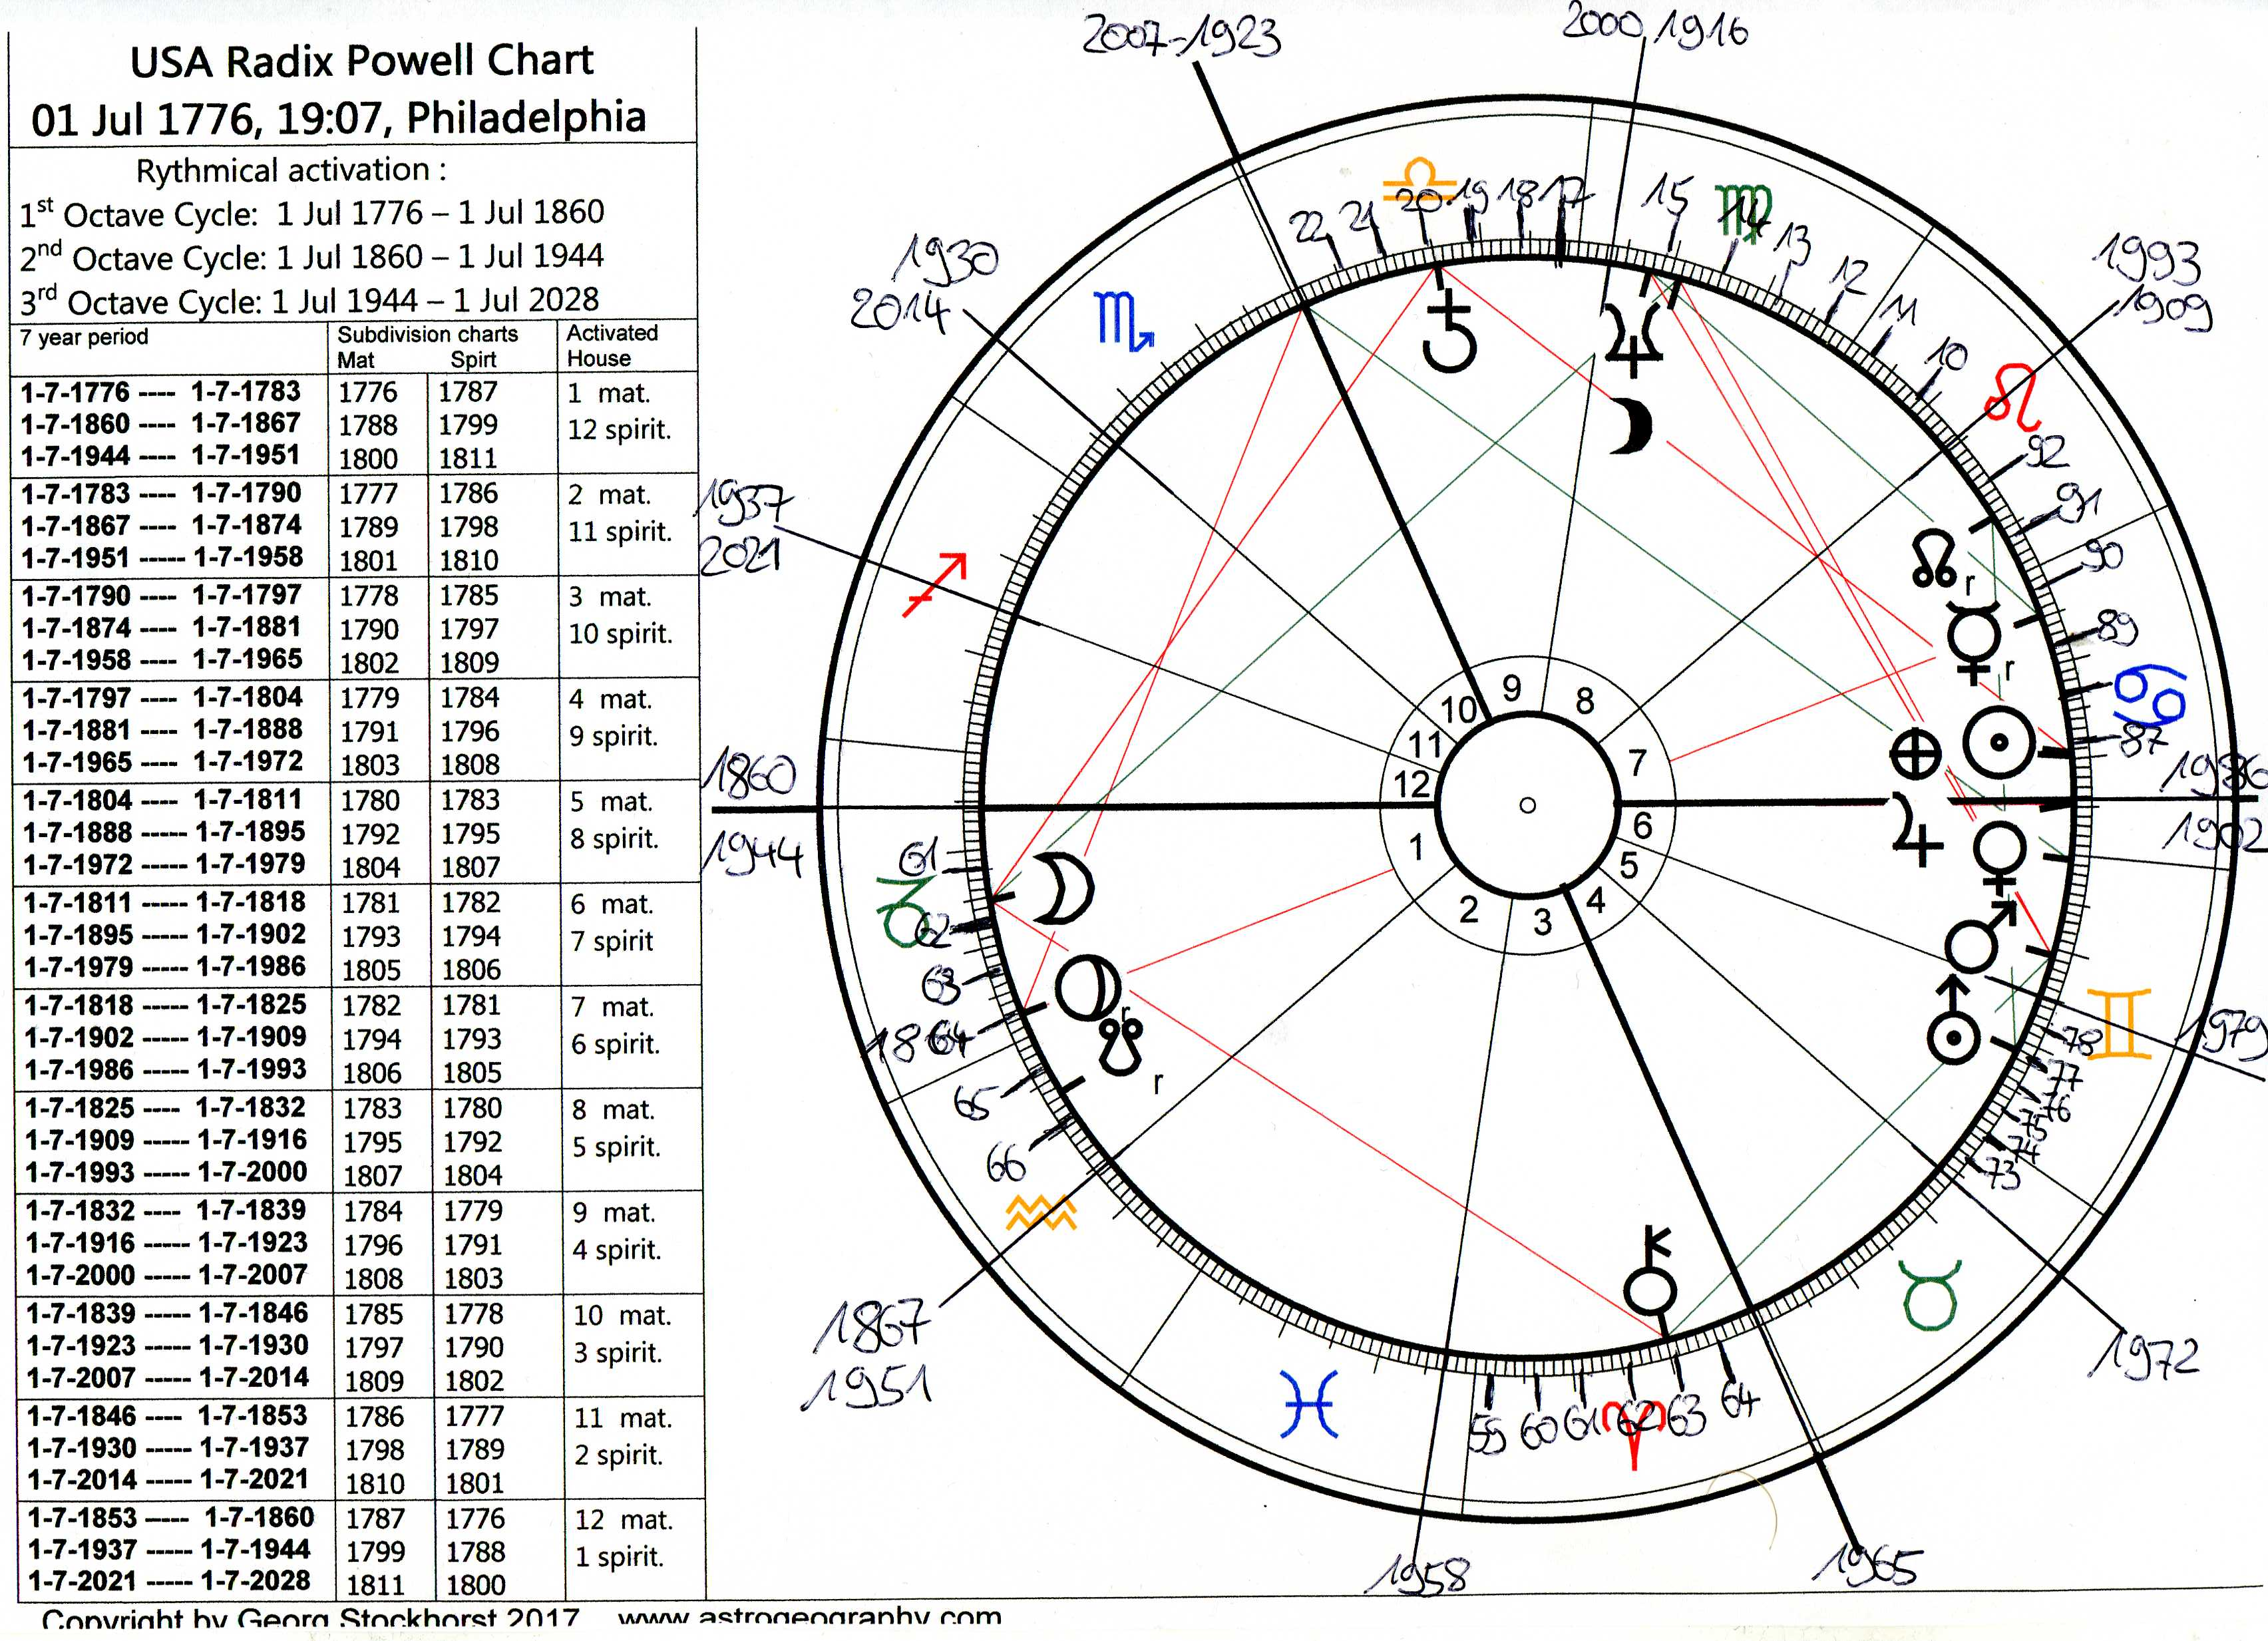 Rythmical activations in the Powell Chart for the foundation of the USA